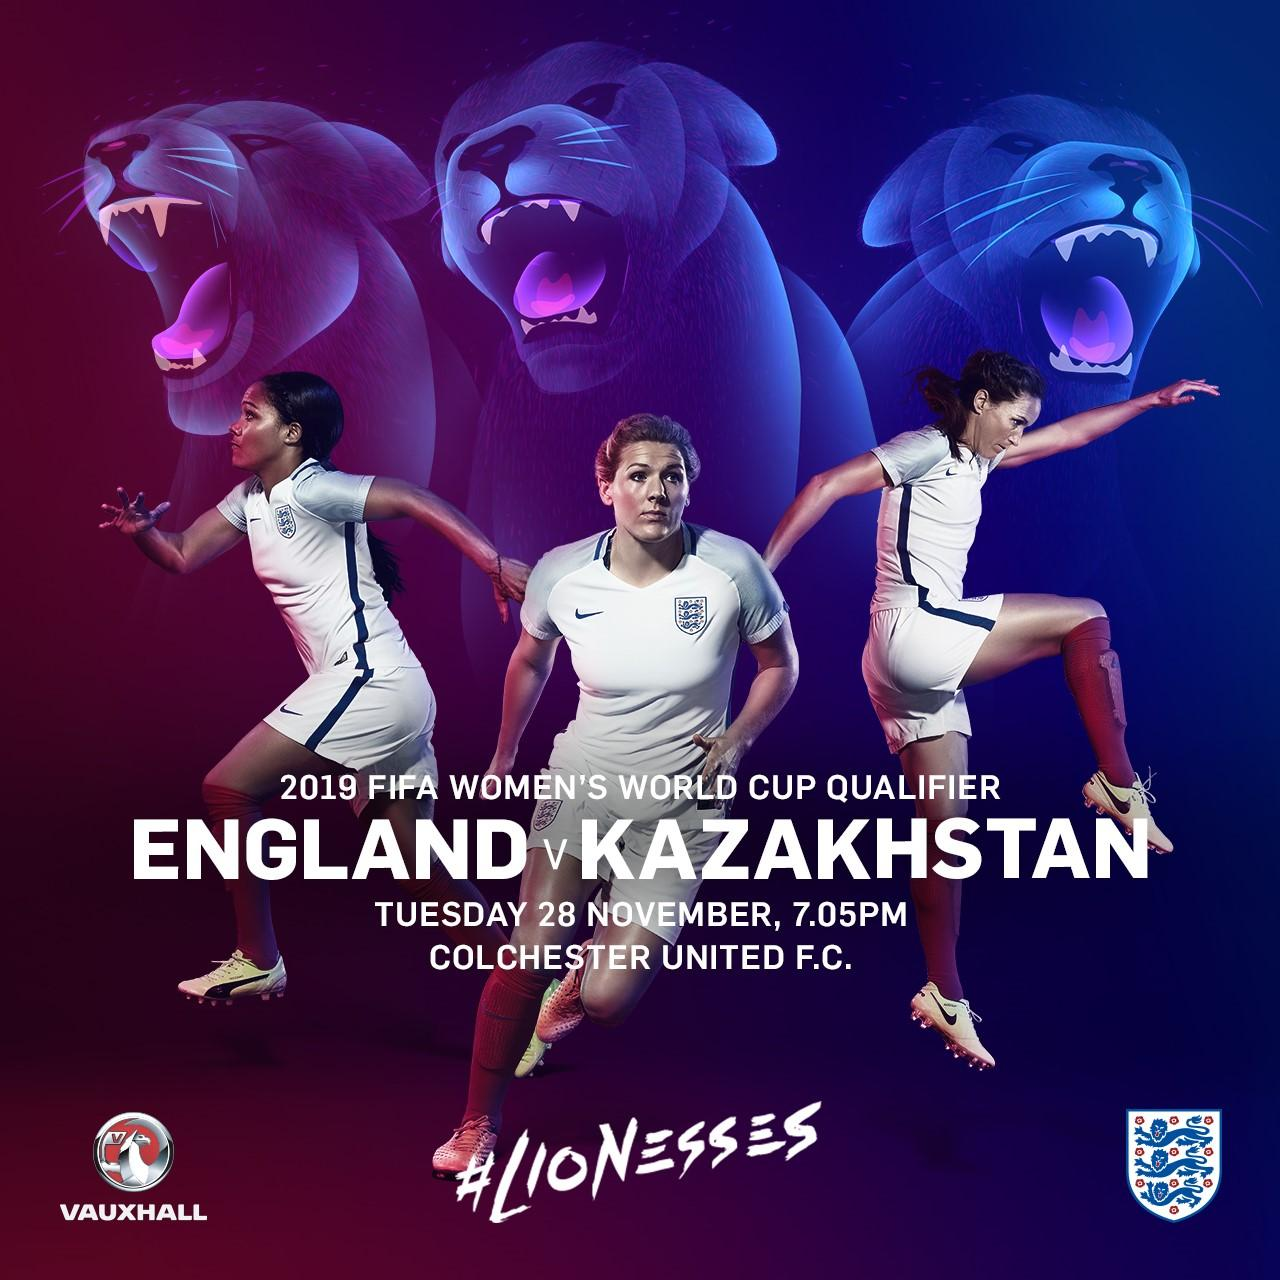 thumbnail_12852_FA_WMN_SNRS_WORLD_CUP_2019_QUALIFIER_CREATIVE_OTR_GAMES_1280x1280_KAZAKHSTAN